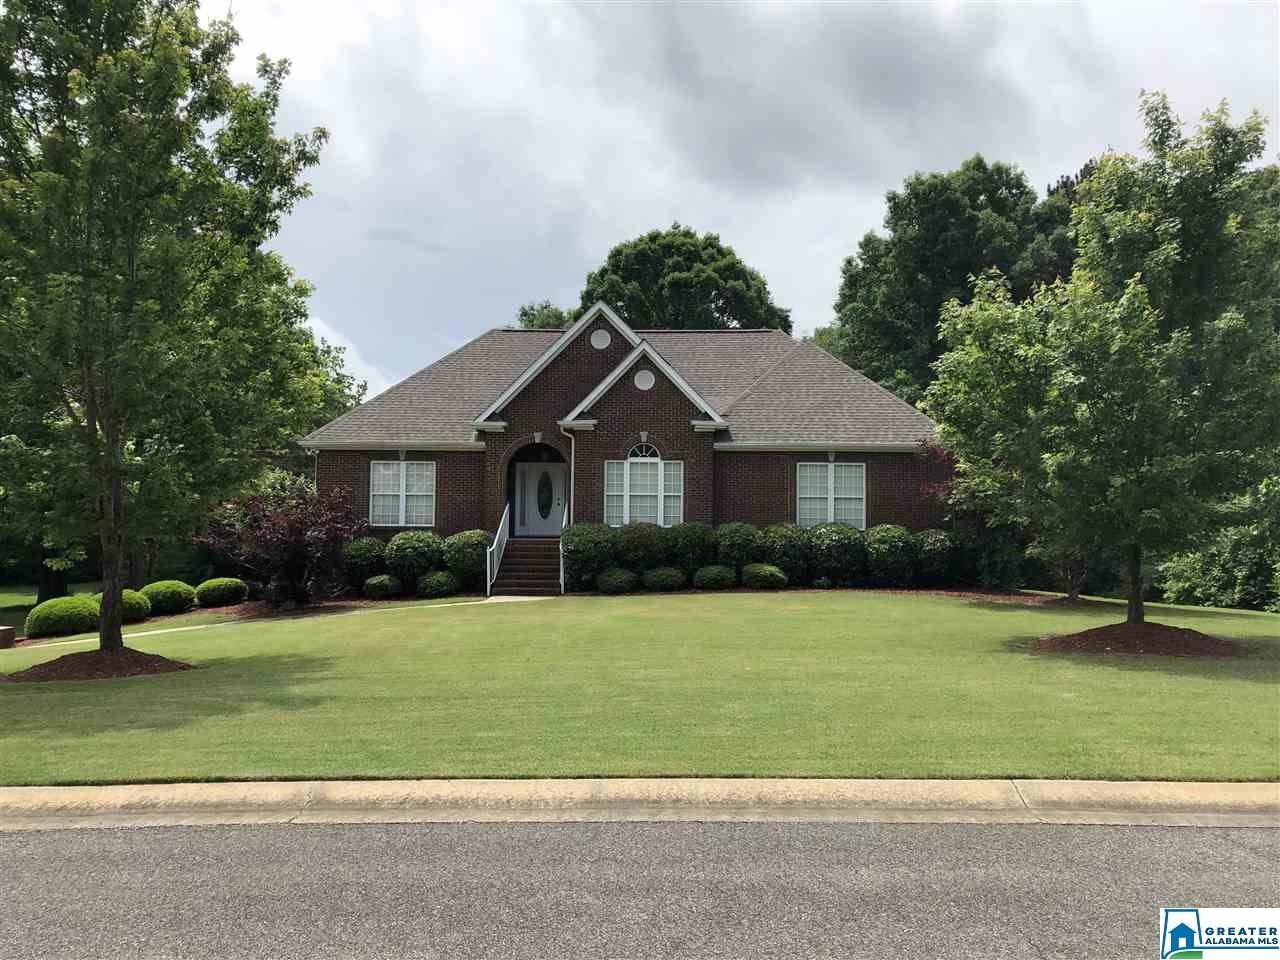 6586 WHITE OAK LN, Hueytown, AL 35023 - #: 875849